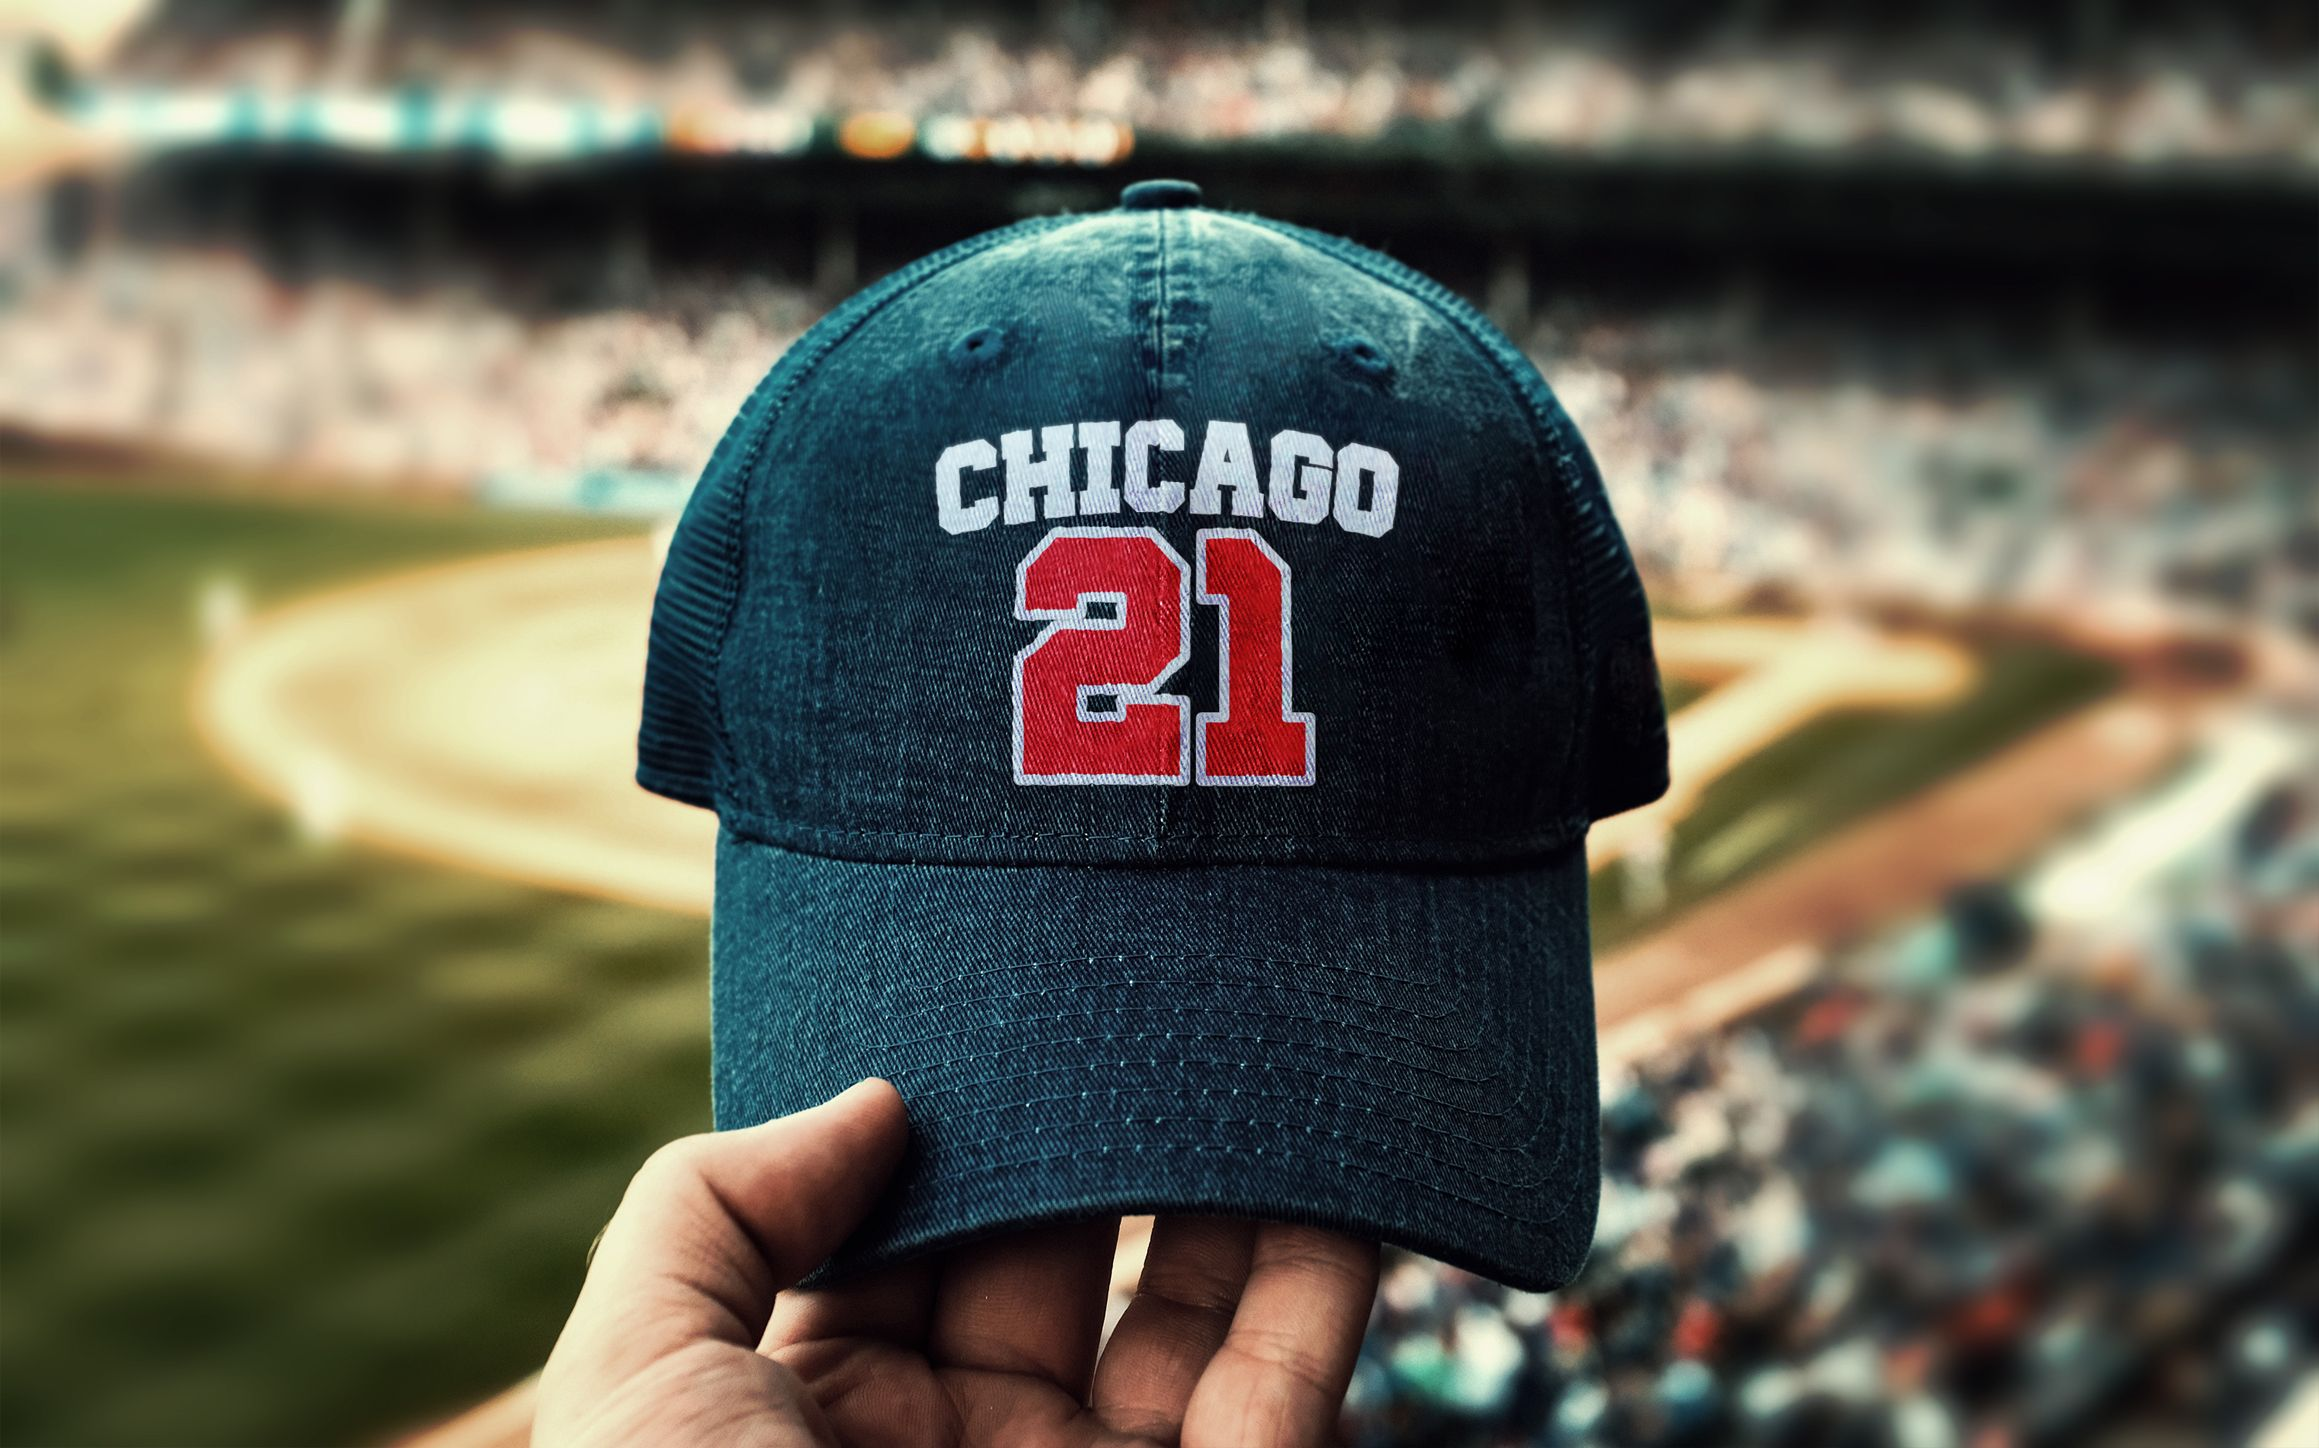 Download Free Realistic Cap Mockup Chicago Games For Men Baseball Game Outfits